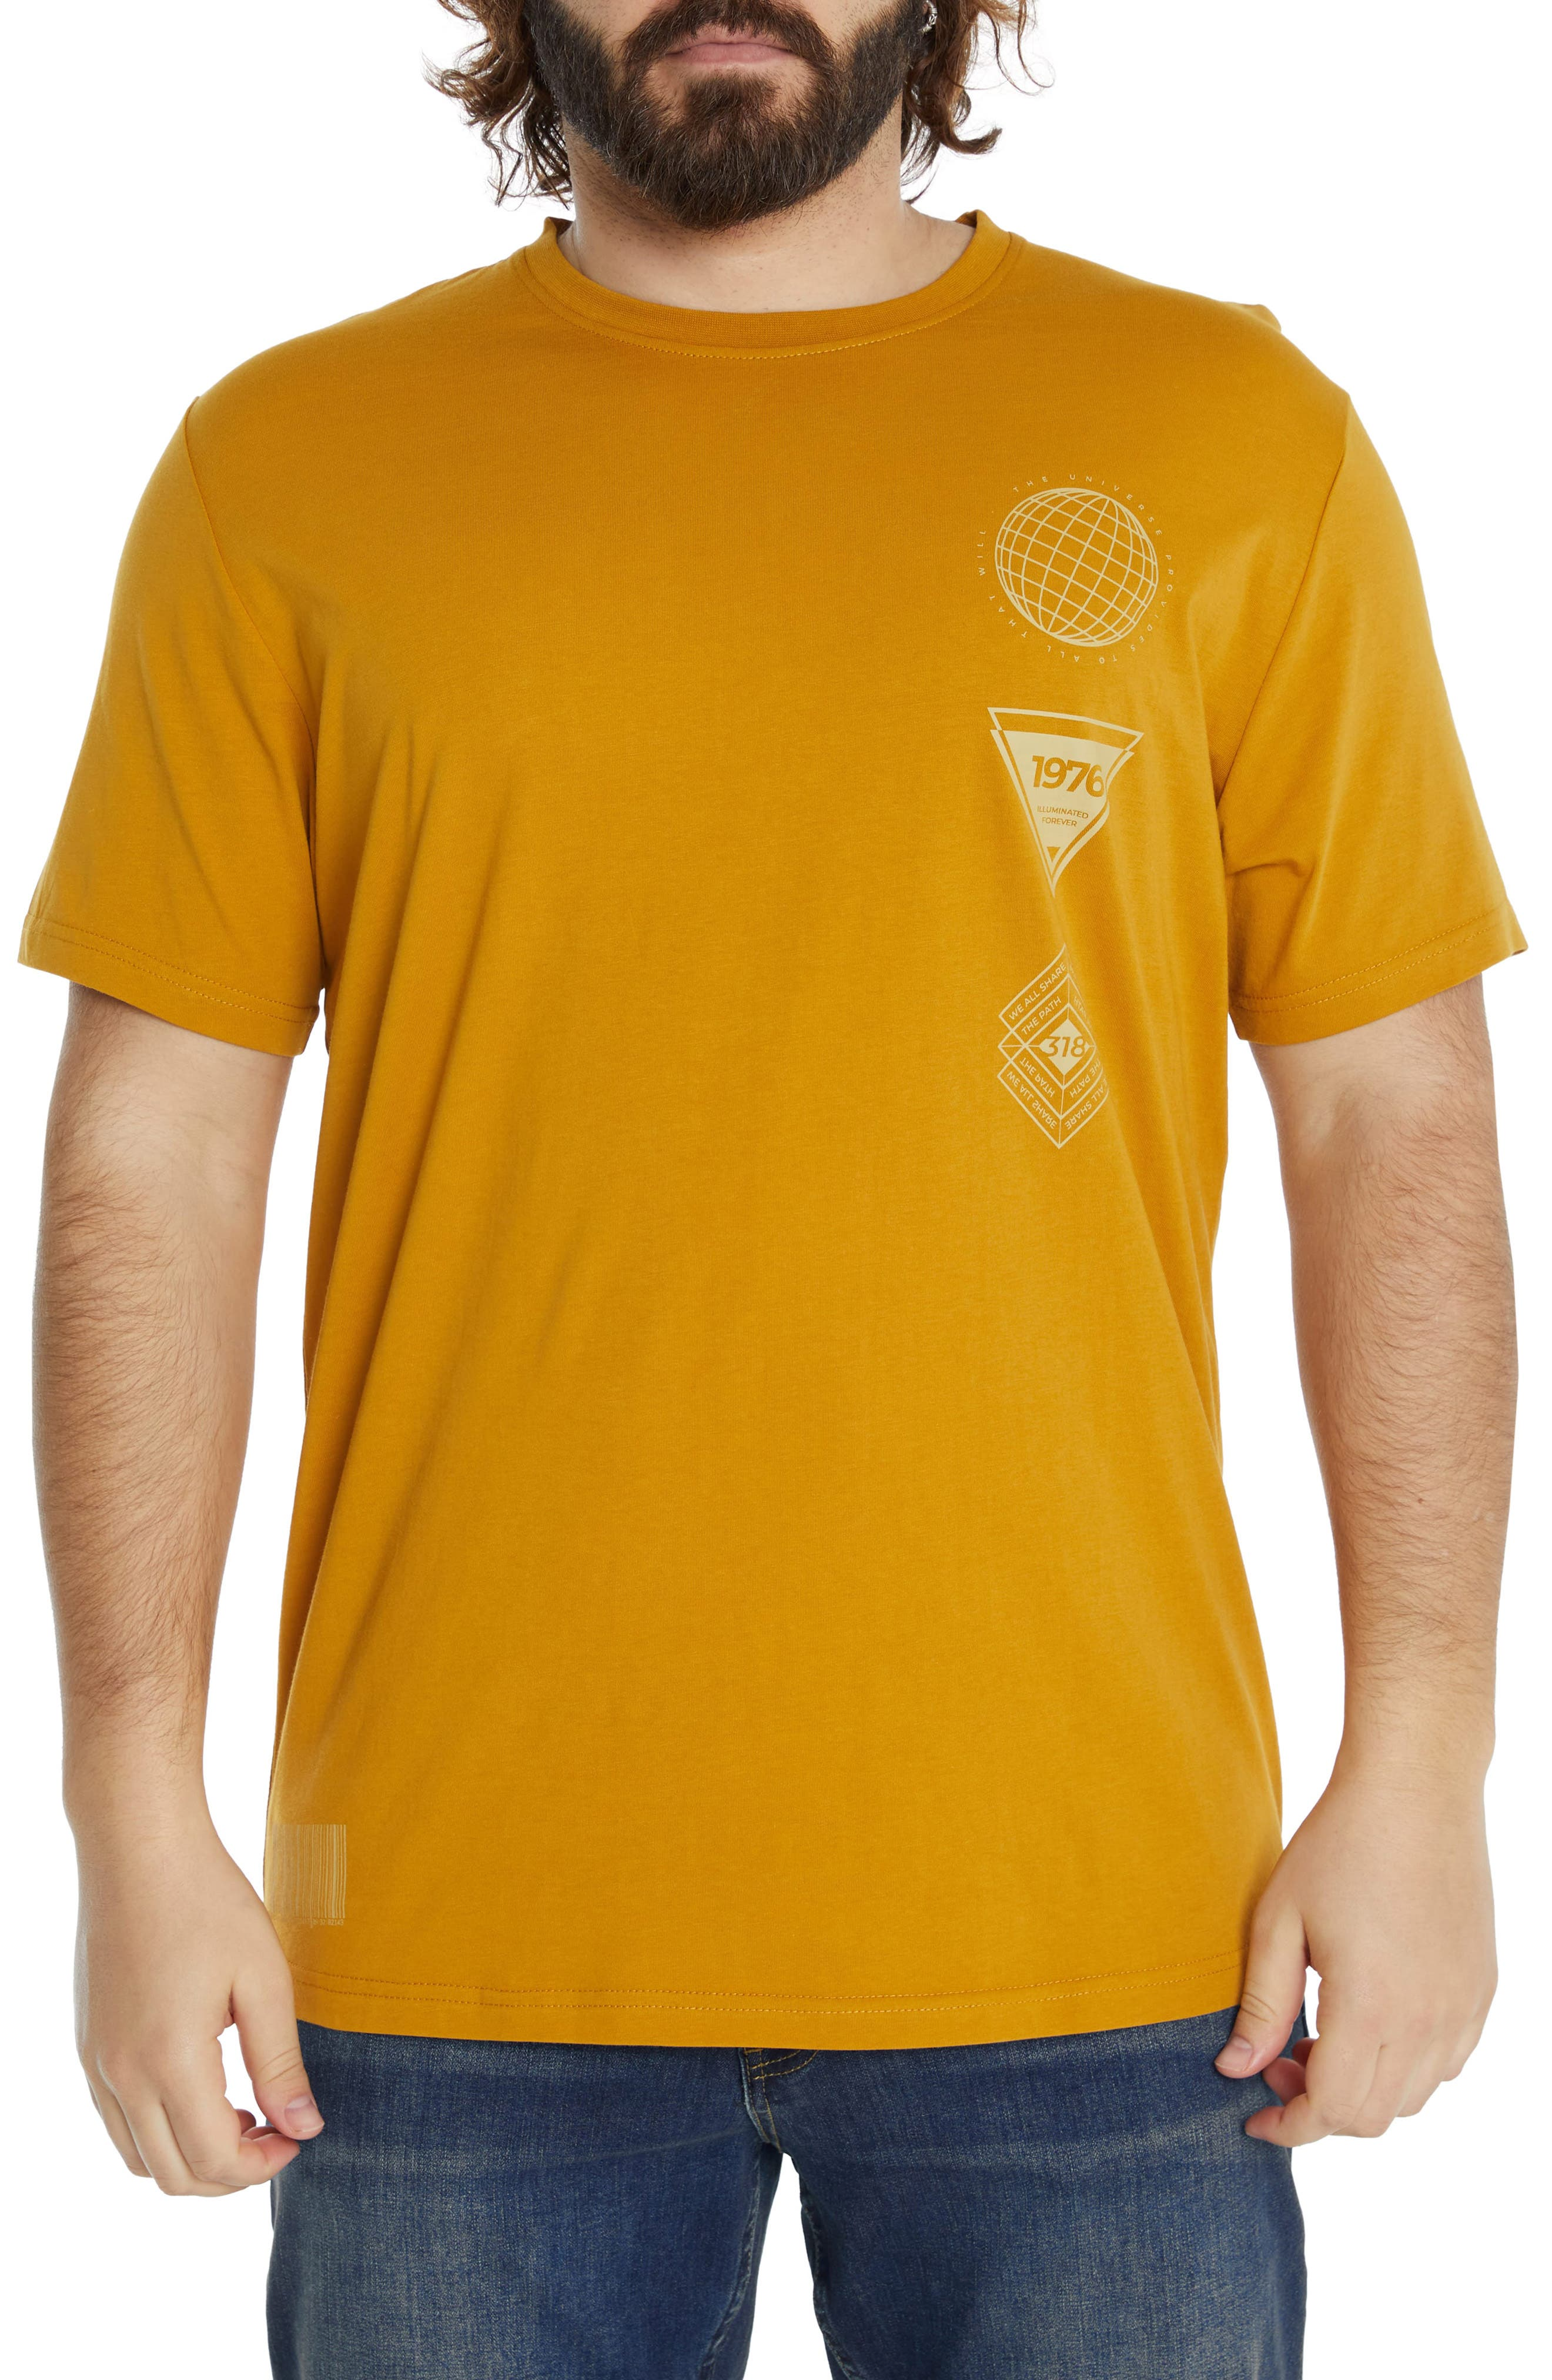 Coded Longline Cotton Graphic Tee